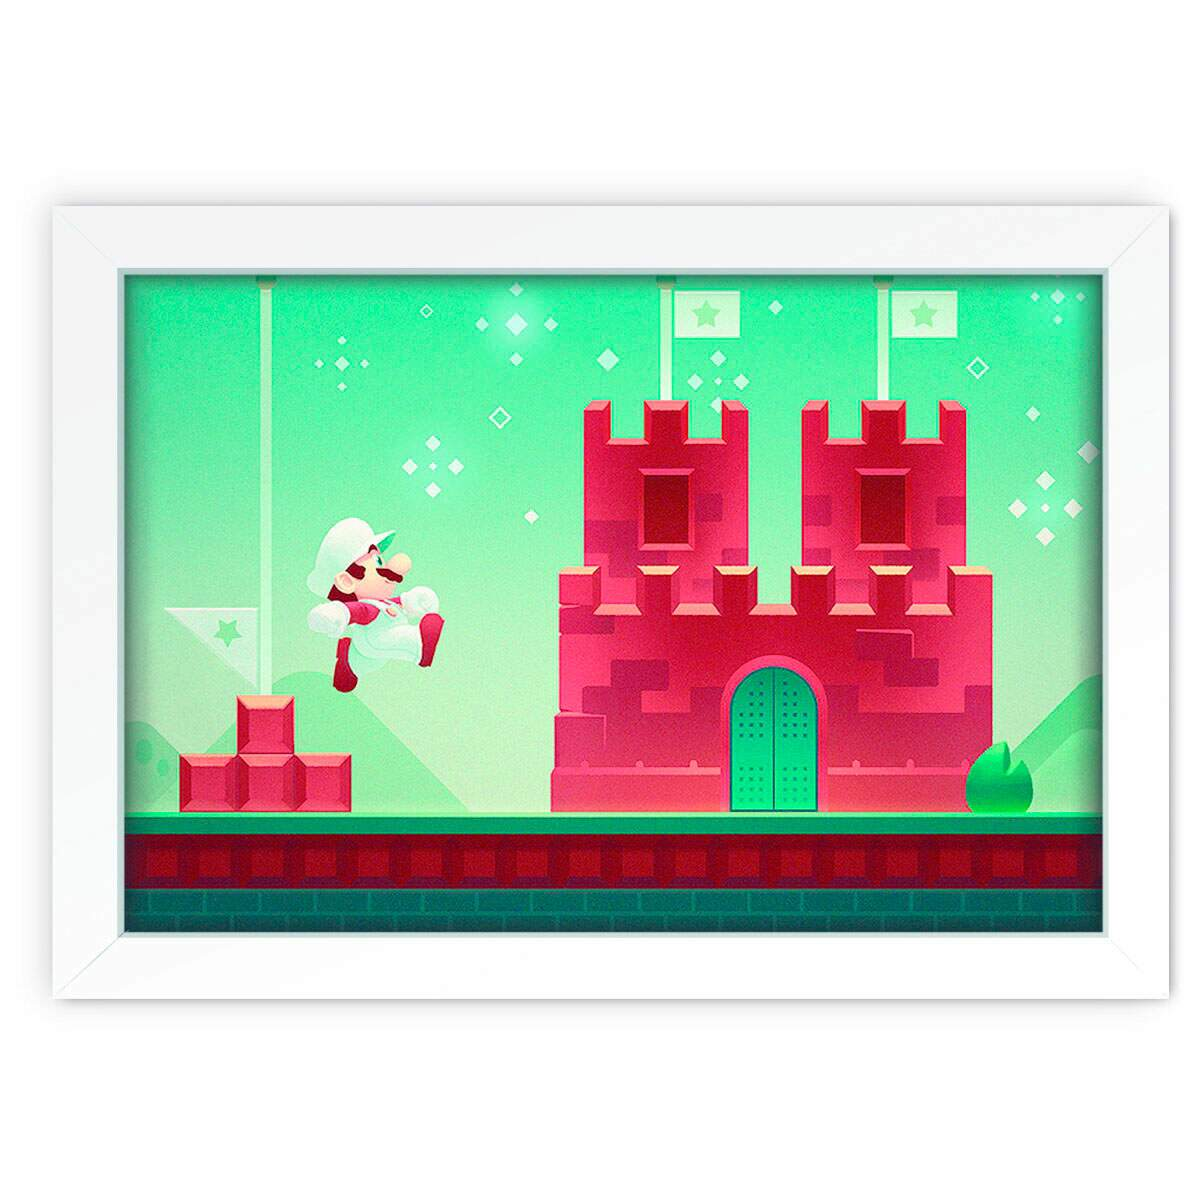 Quadro Decorativo Super Mario Bross